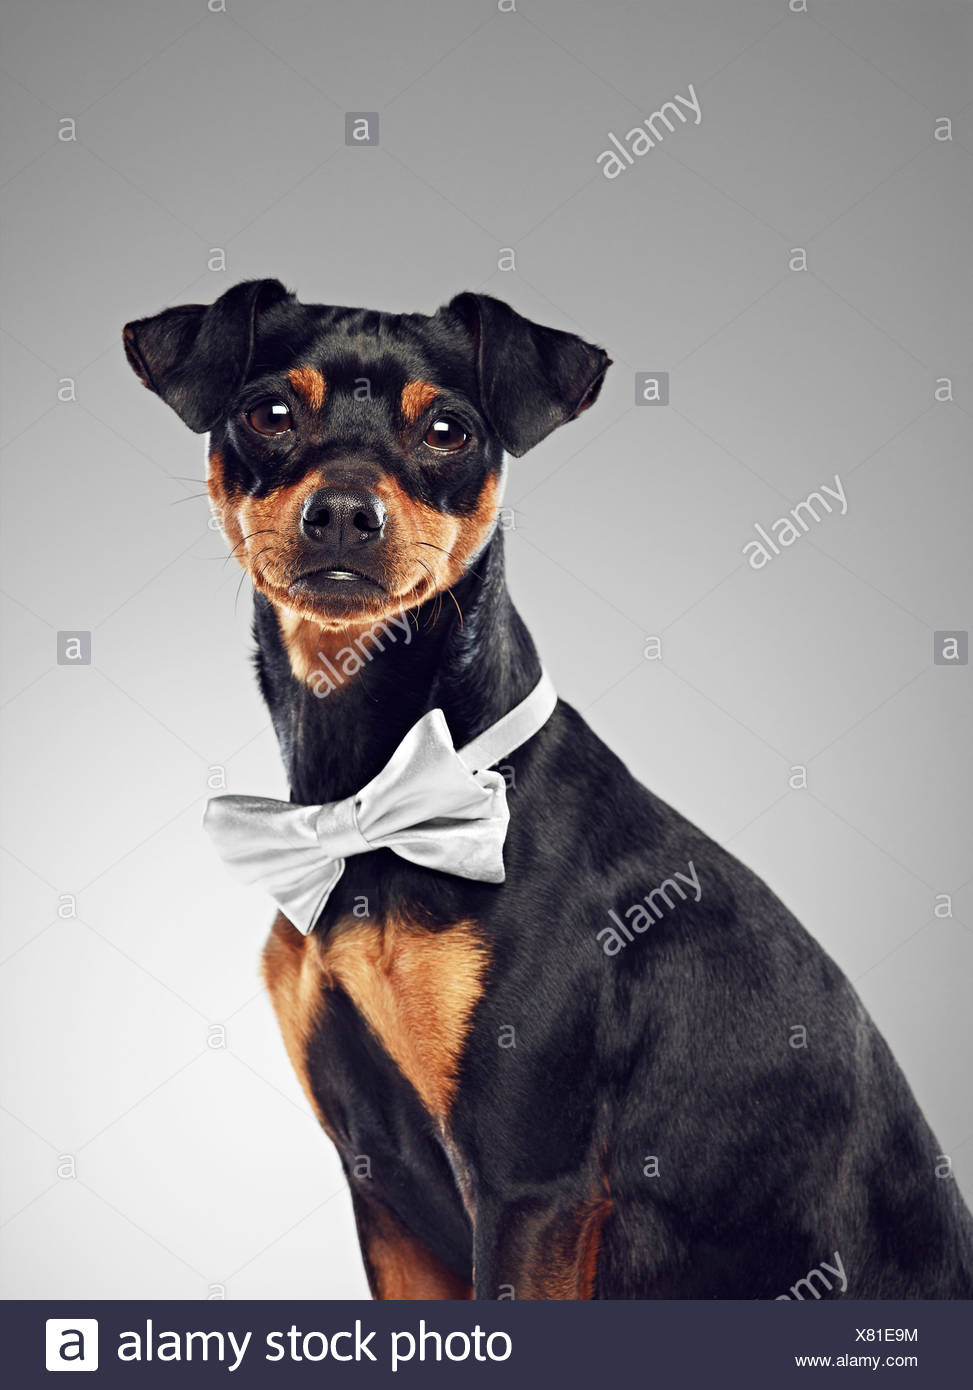 Dog wearing bow tie - Stock Image